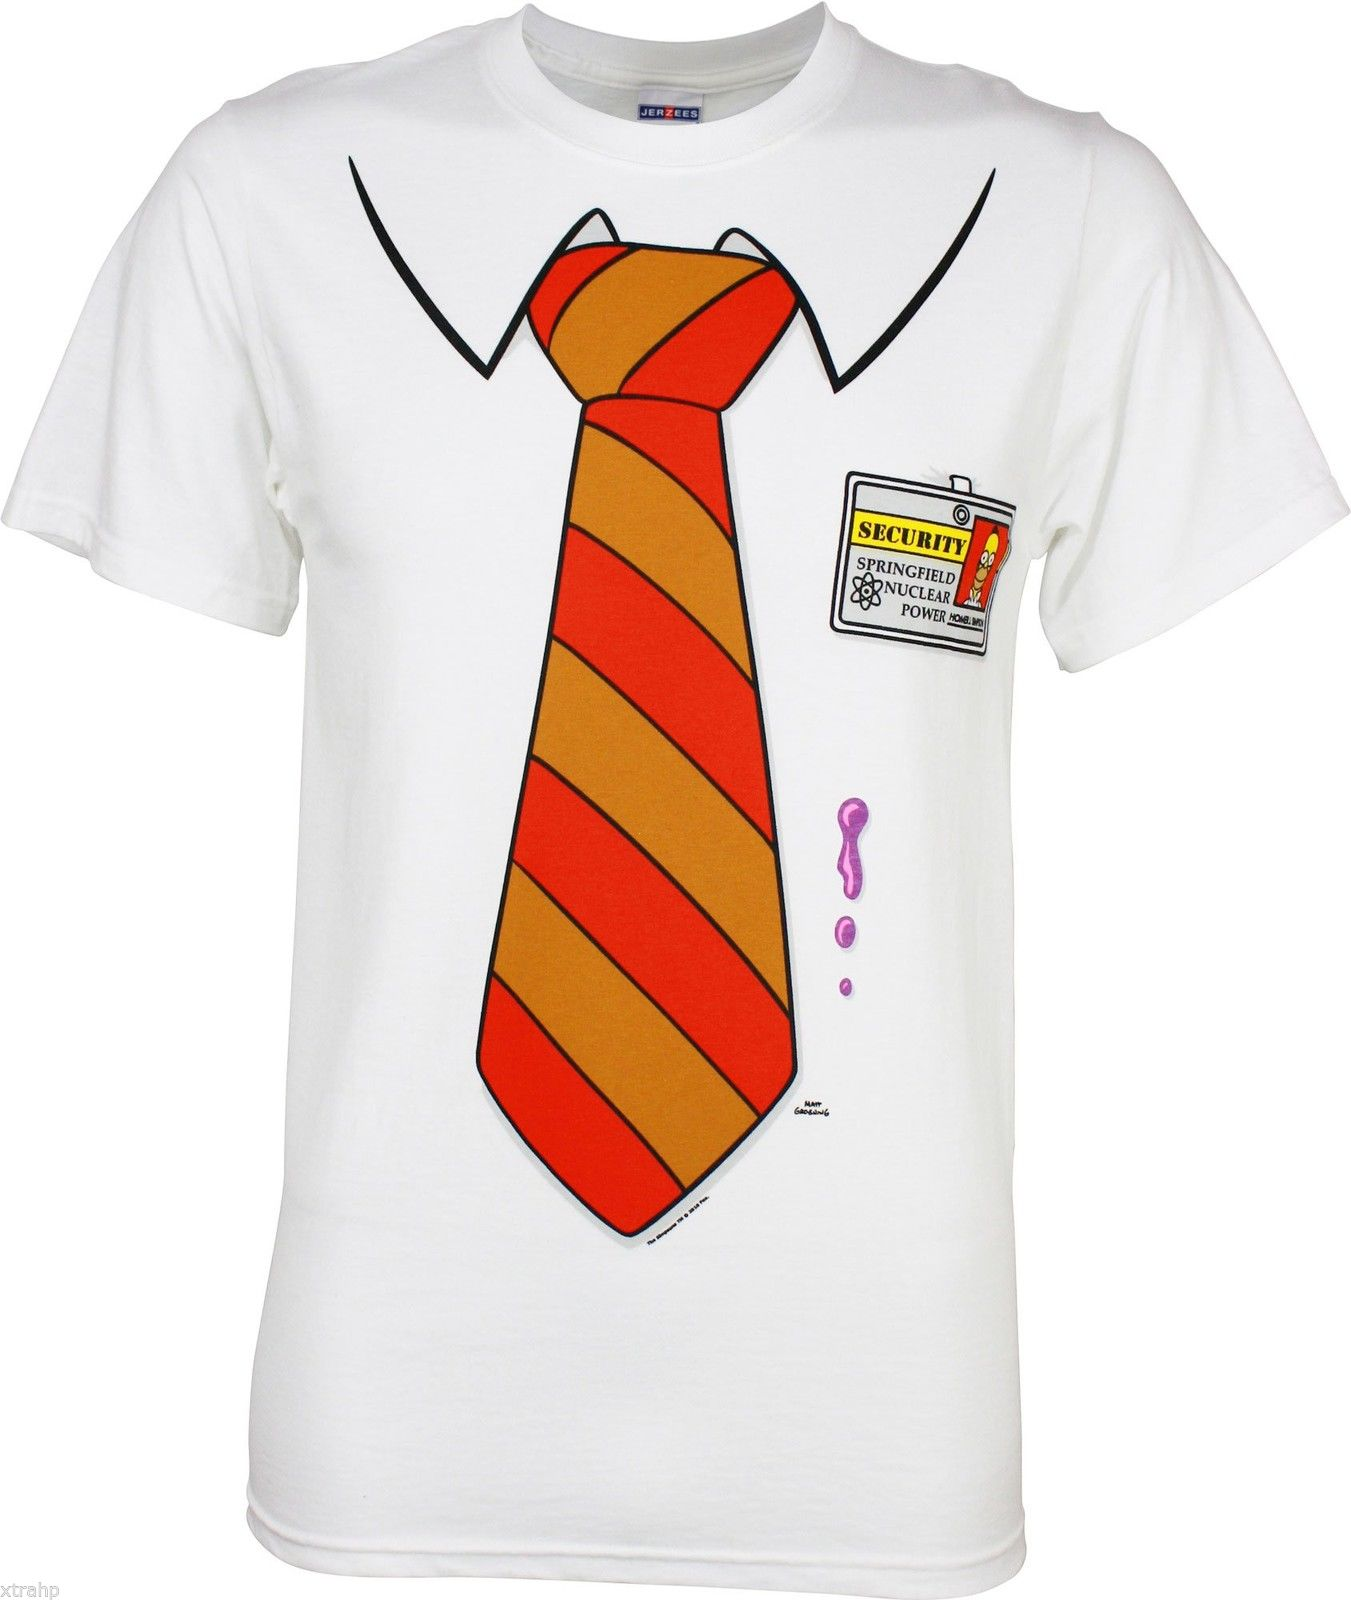 Homer simpson t shirt costume the simpsons tie springfield for Costume t shirts online